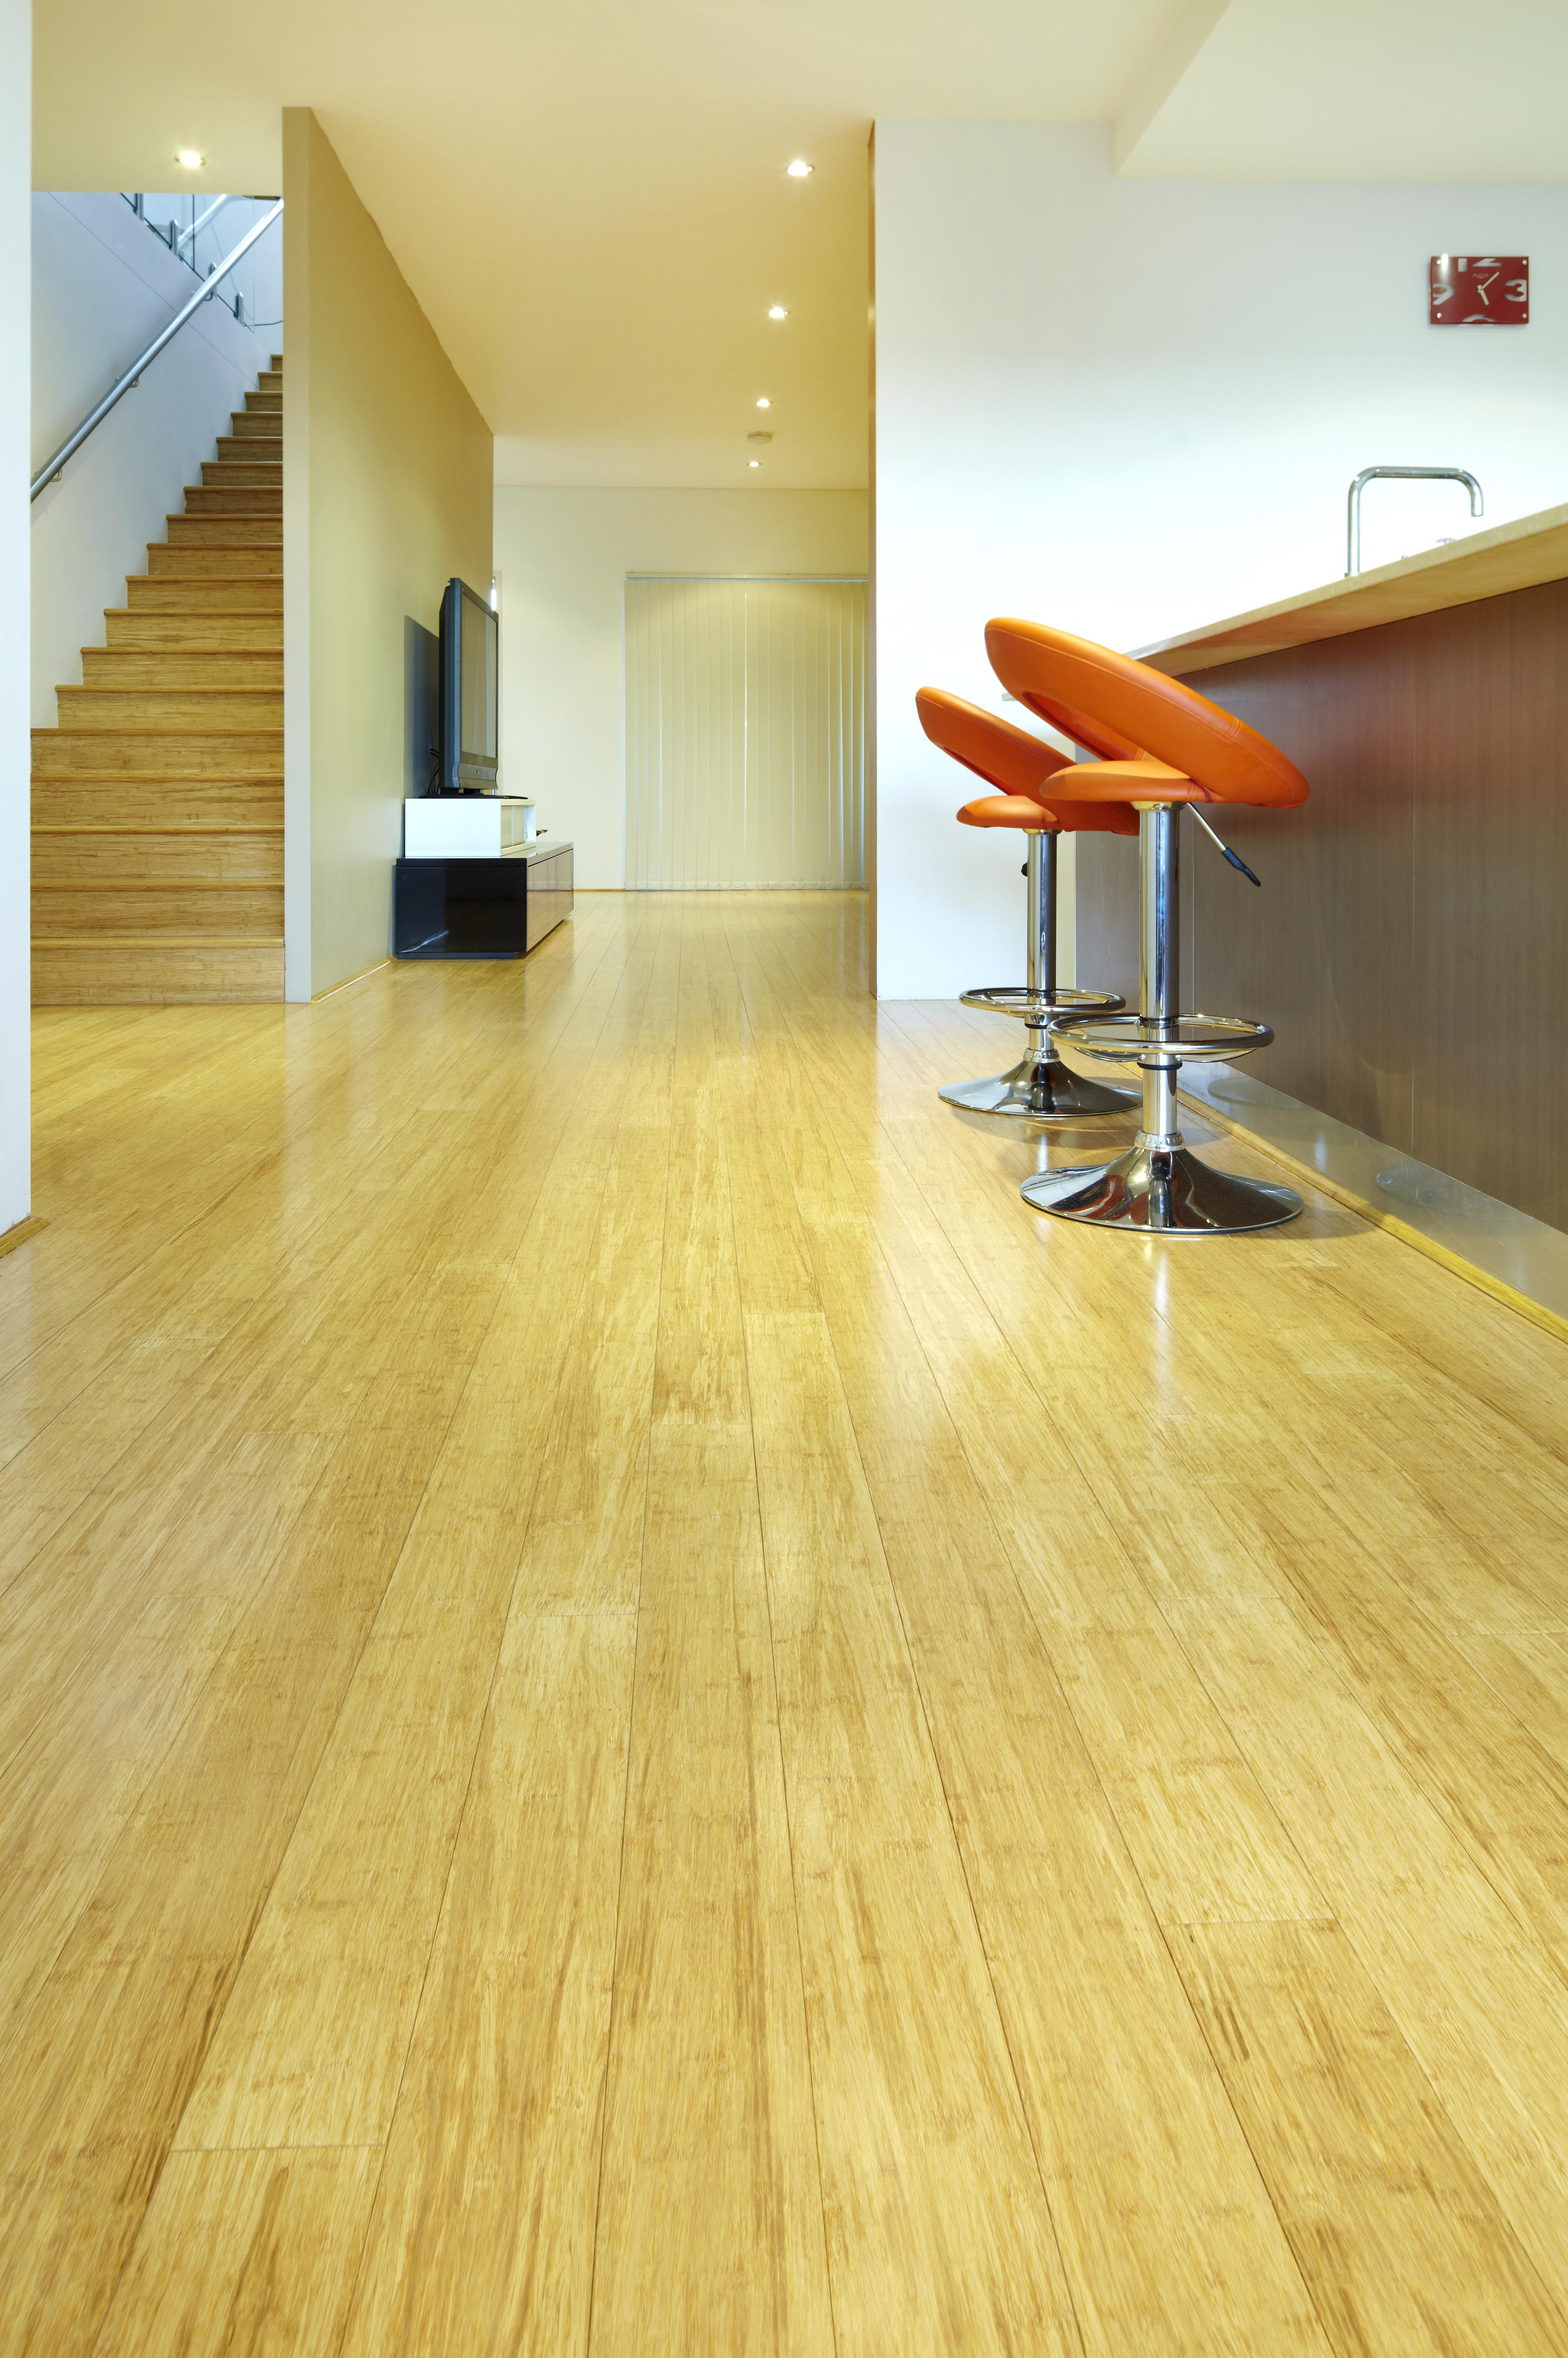 Bamboo Flooring: Green Alternatives To Timber Floors Stonewood Natural  Bamboo: Stonewood Is 1850x125x14mm A